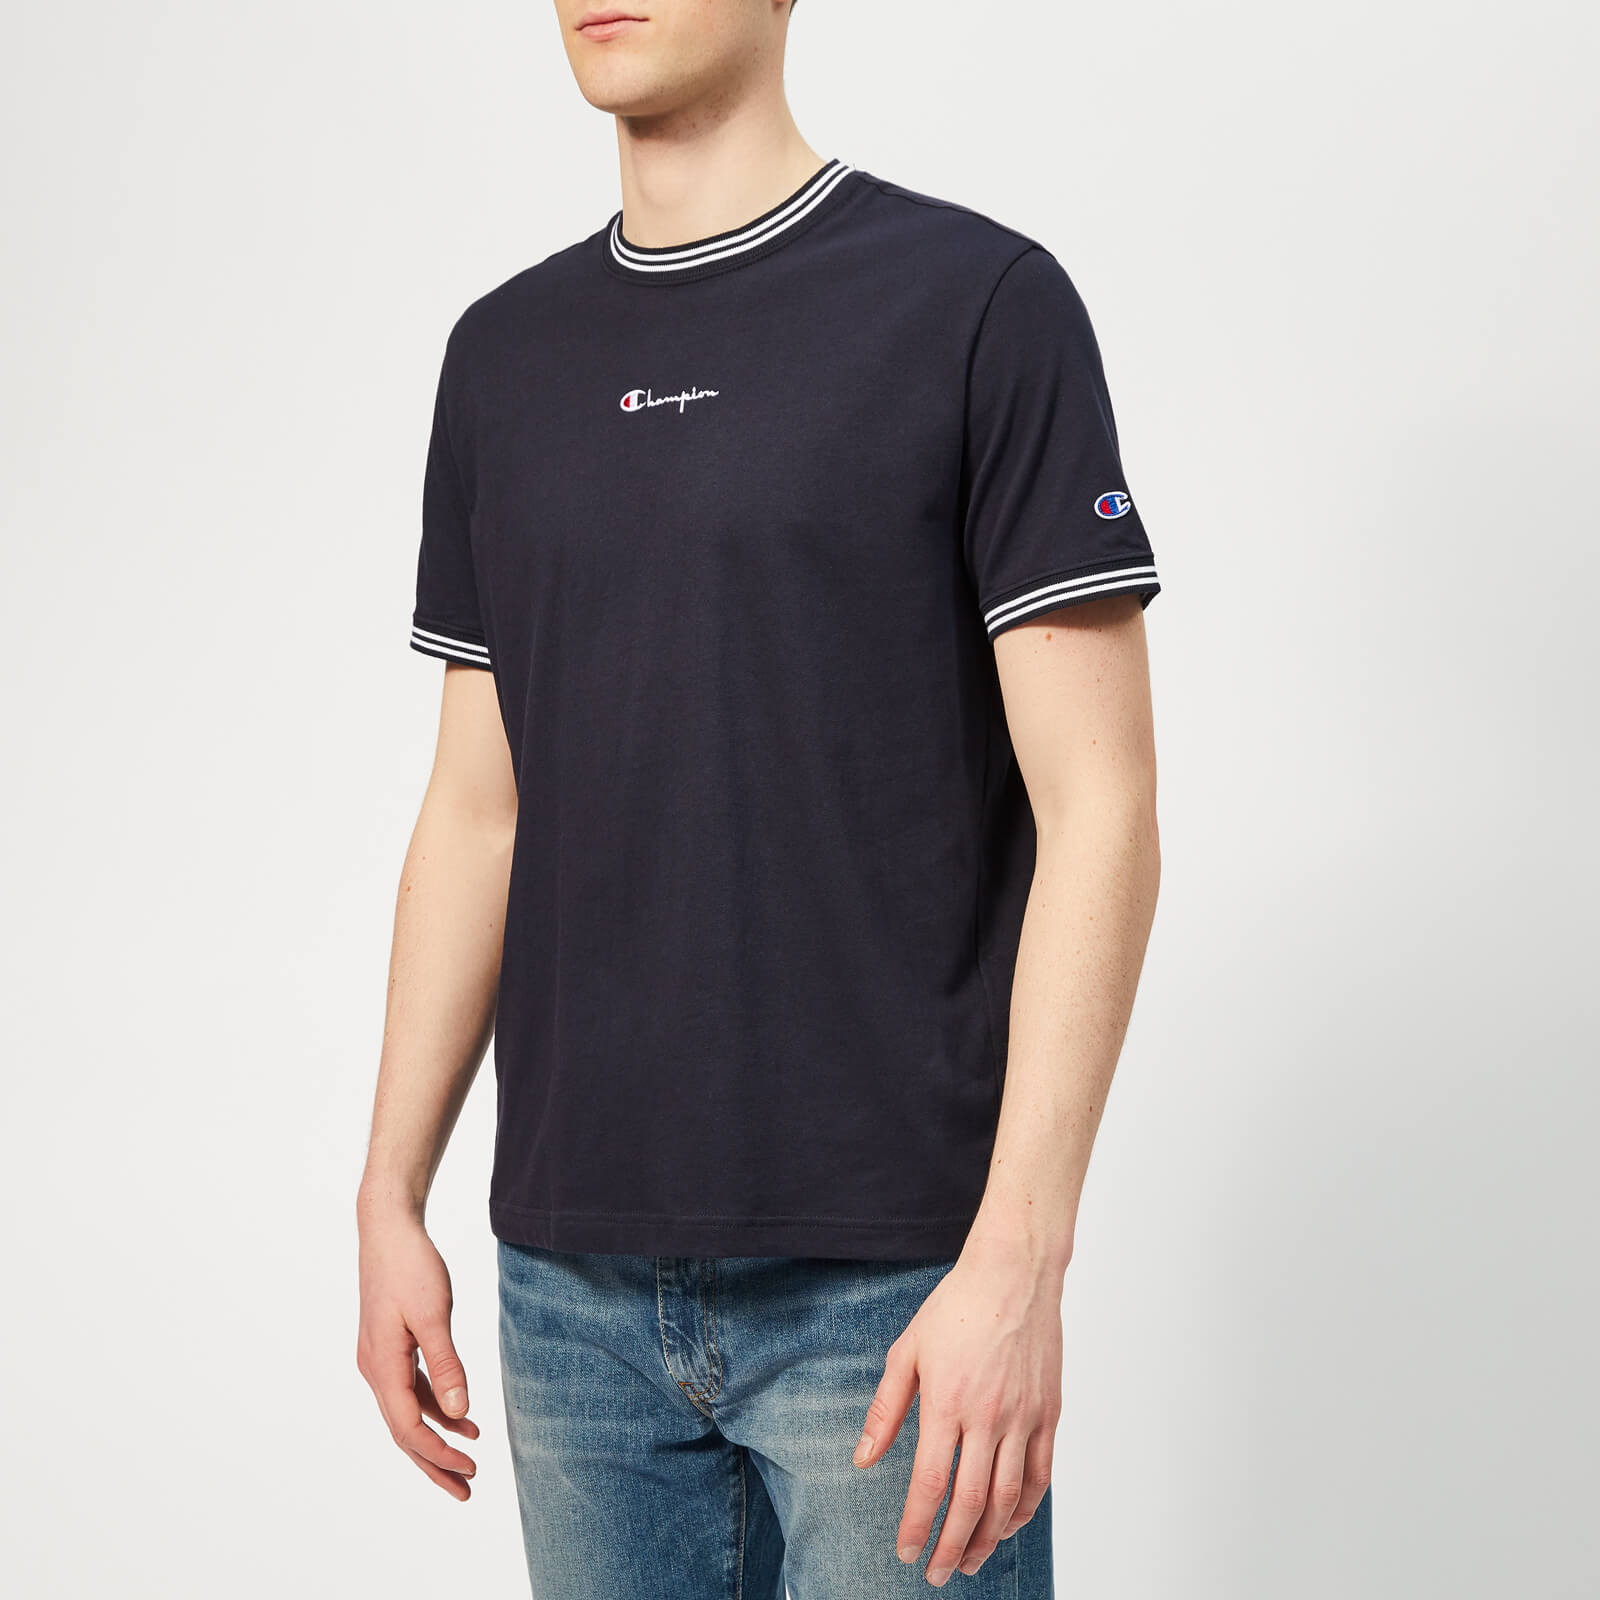 90c7ad96 Champion Men's Crew Neck T-Shirt - Navy - Free UK Delivery over £50